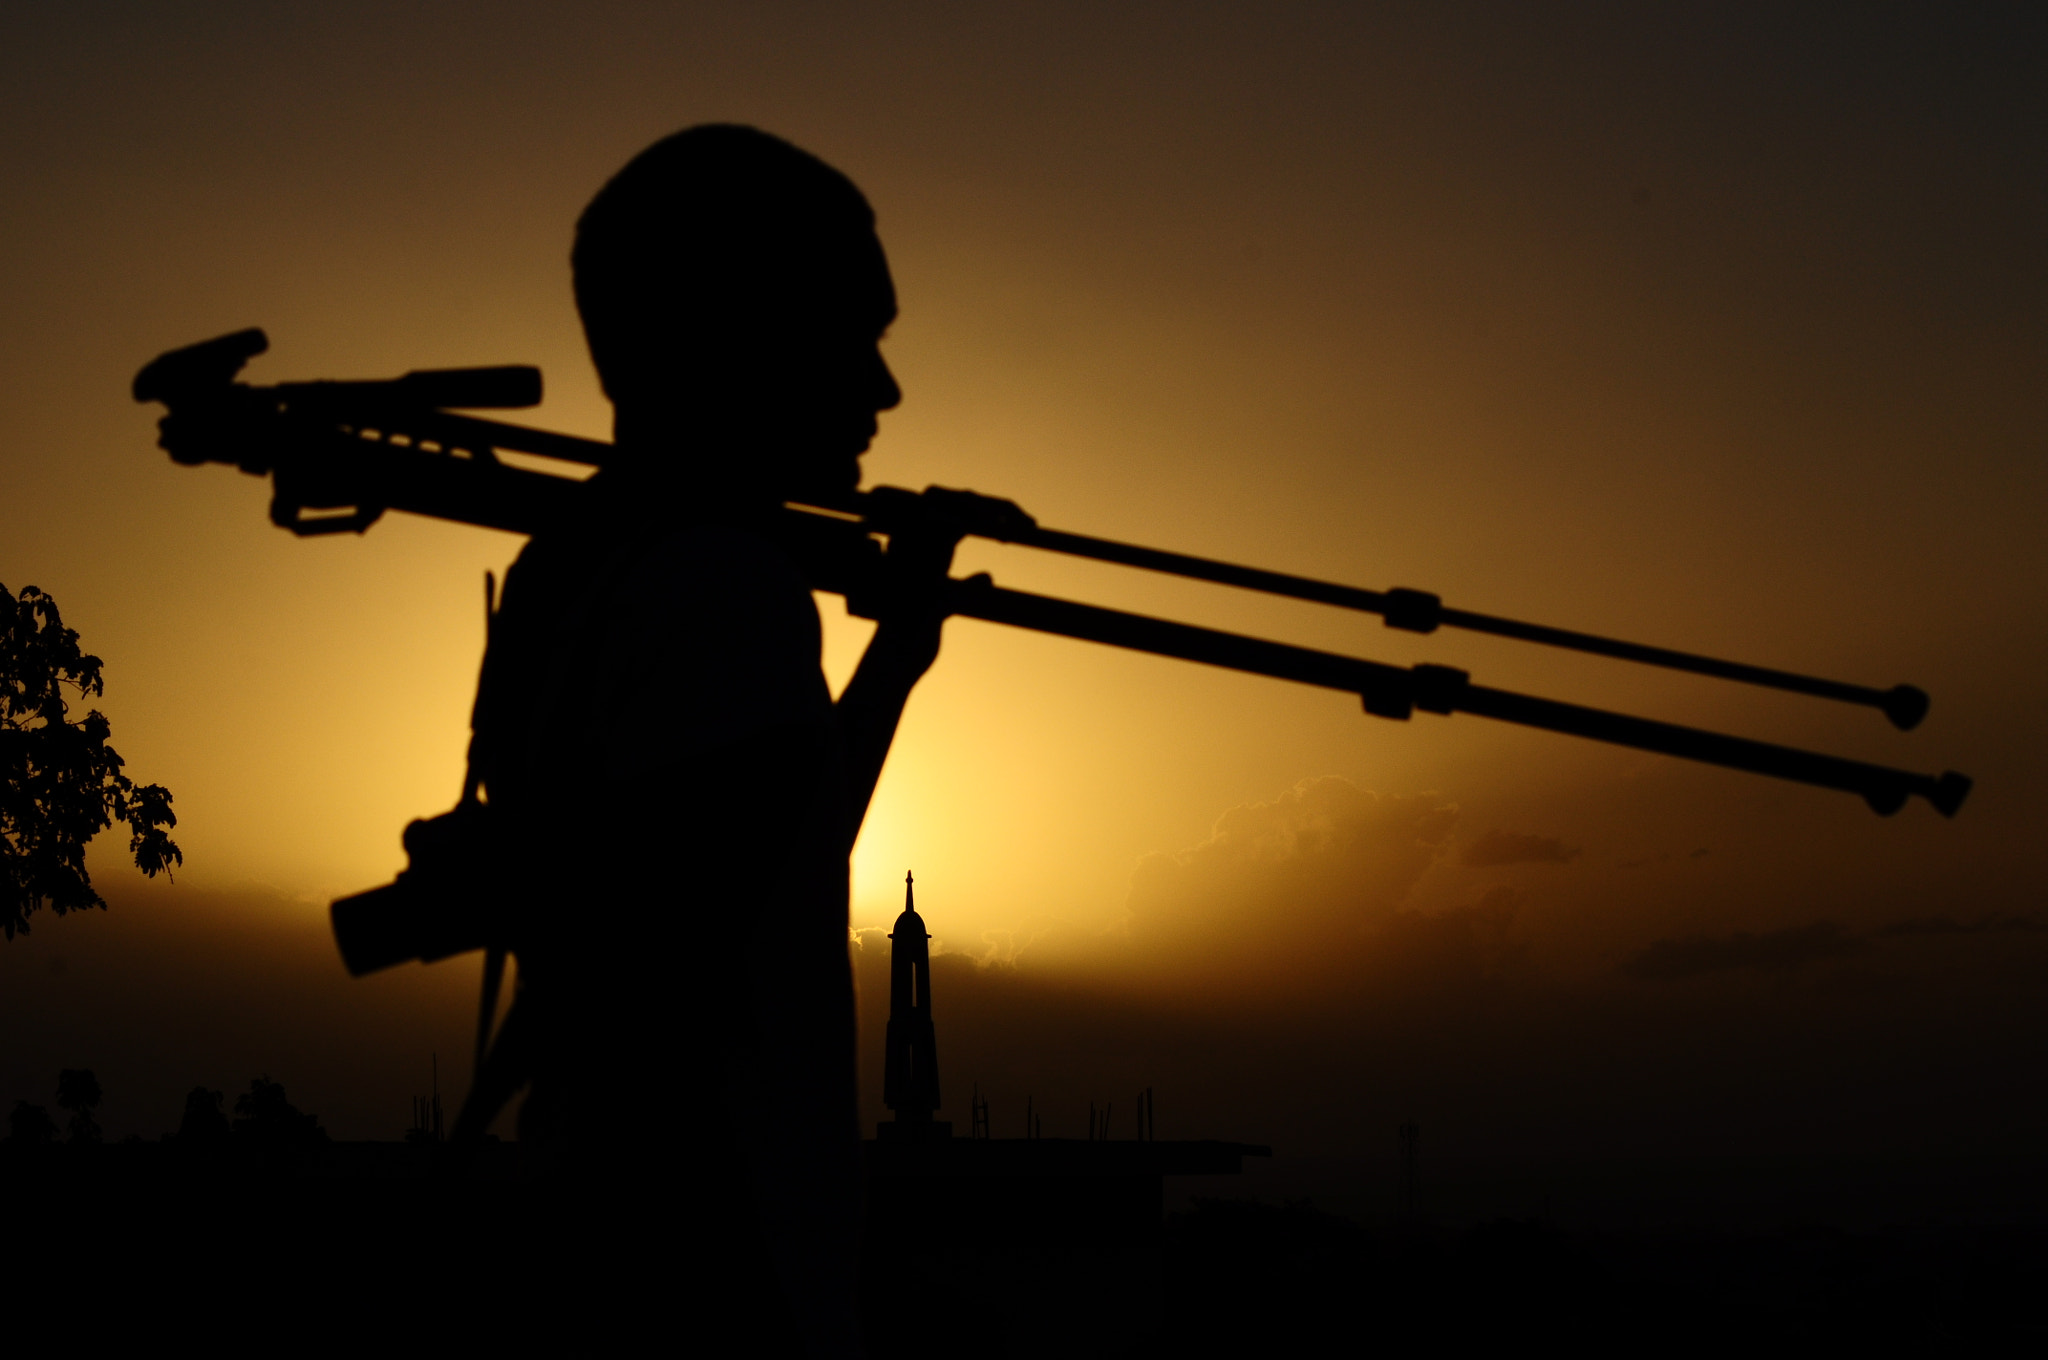 Photograph Silhouette of an image hunter by Ziyad Kadayer on 500px